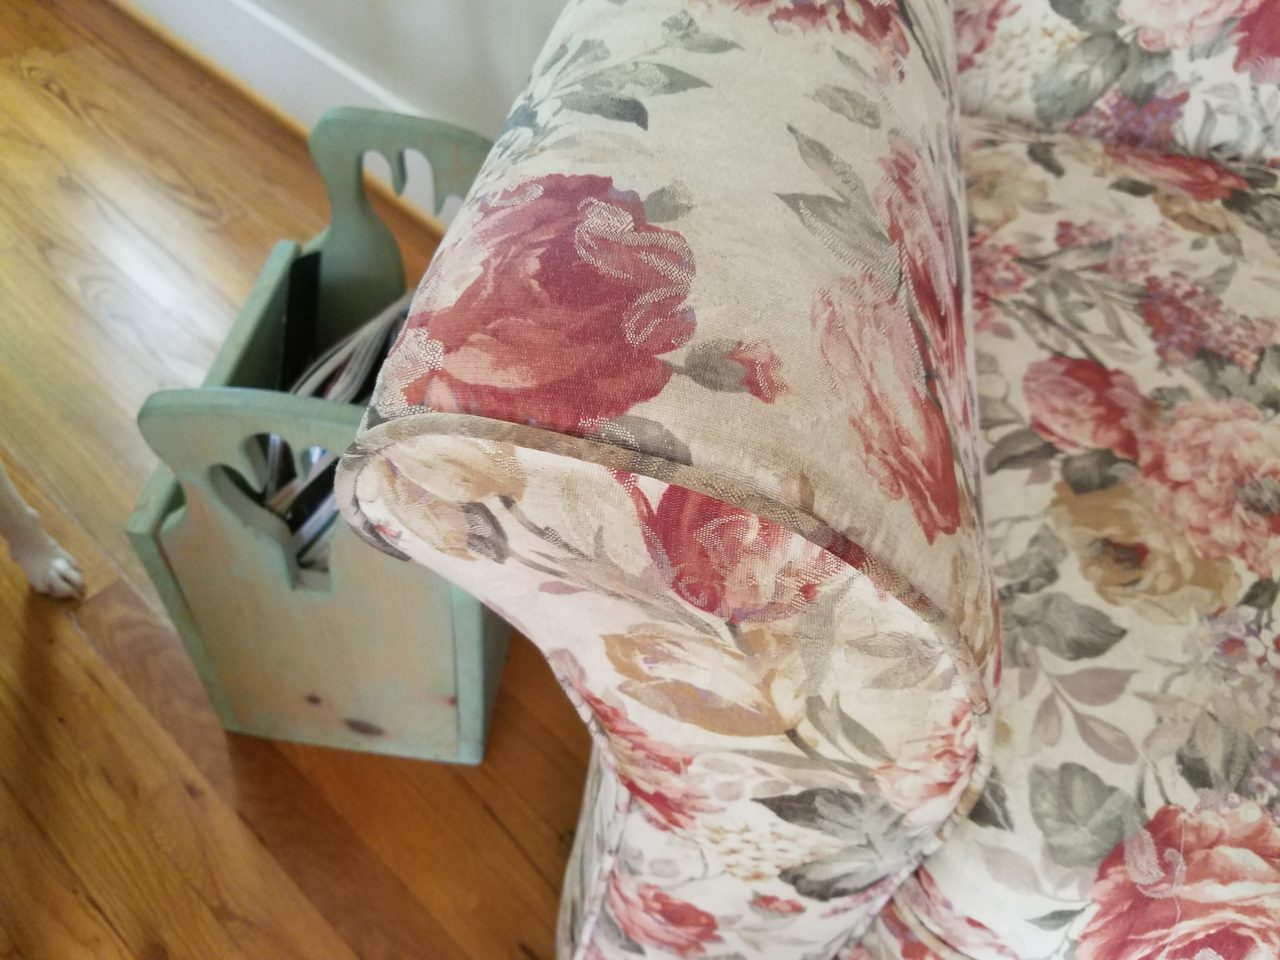 Couch after cleaning